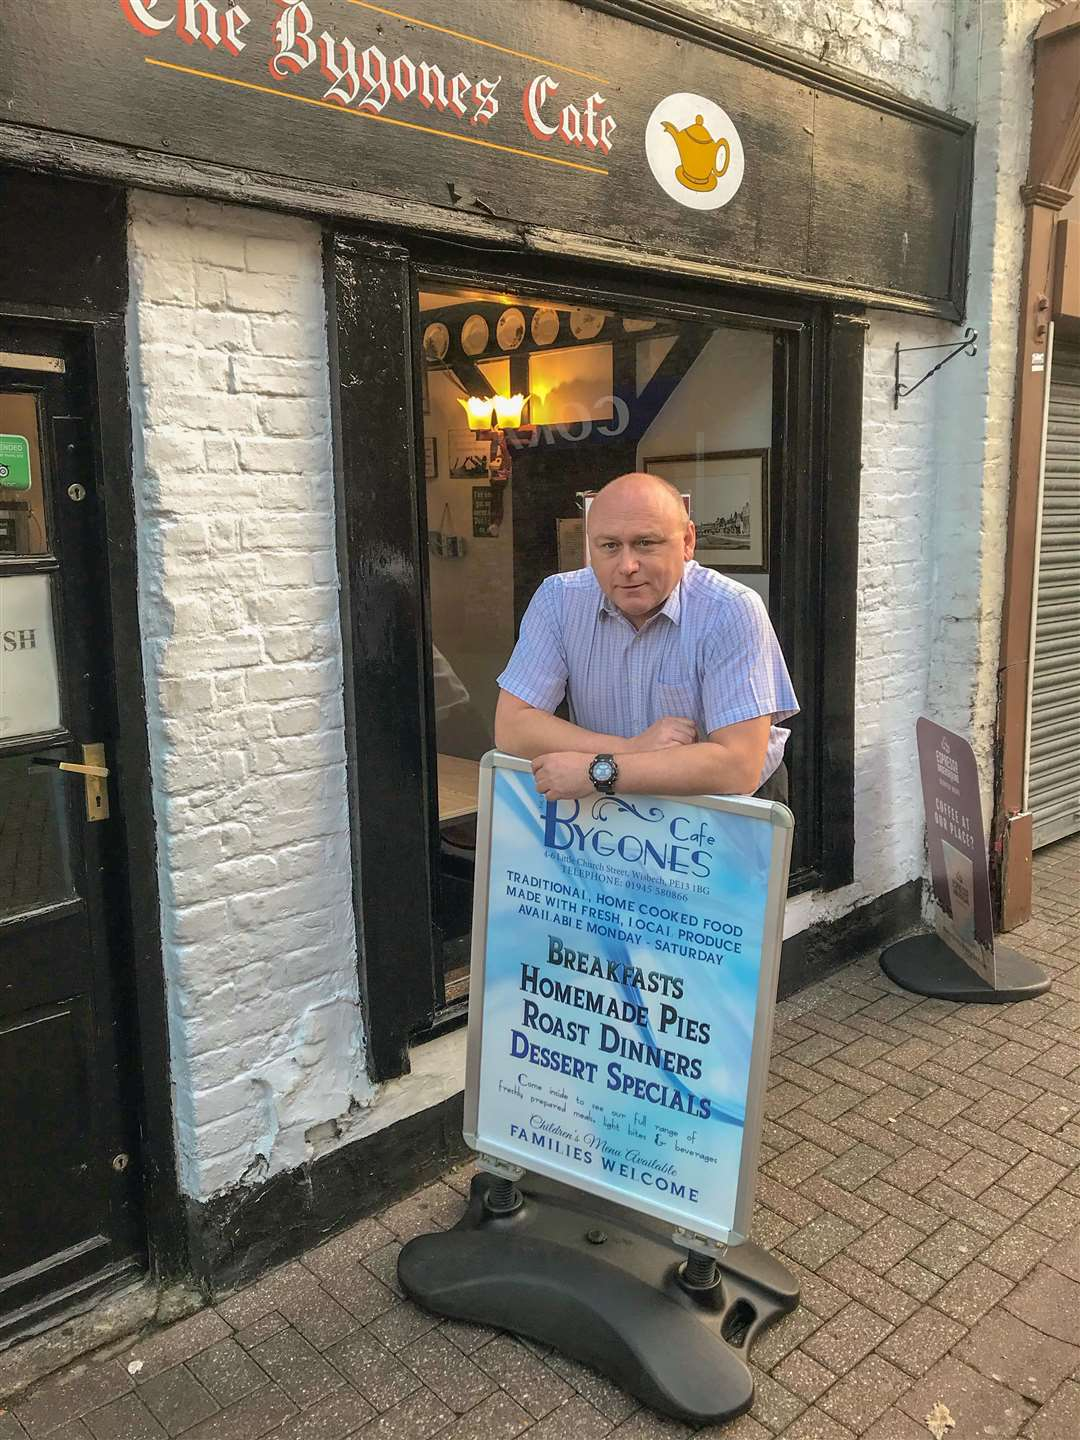 Andy Maul from Bygones Cafe in Wisbech has agreed to open his premises to the homeless on a Tuesday evening.